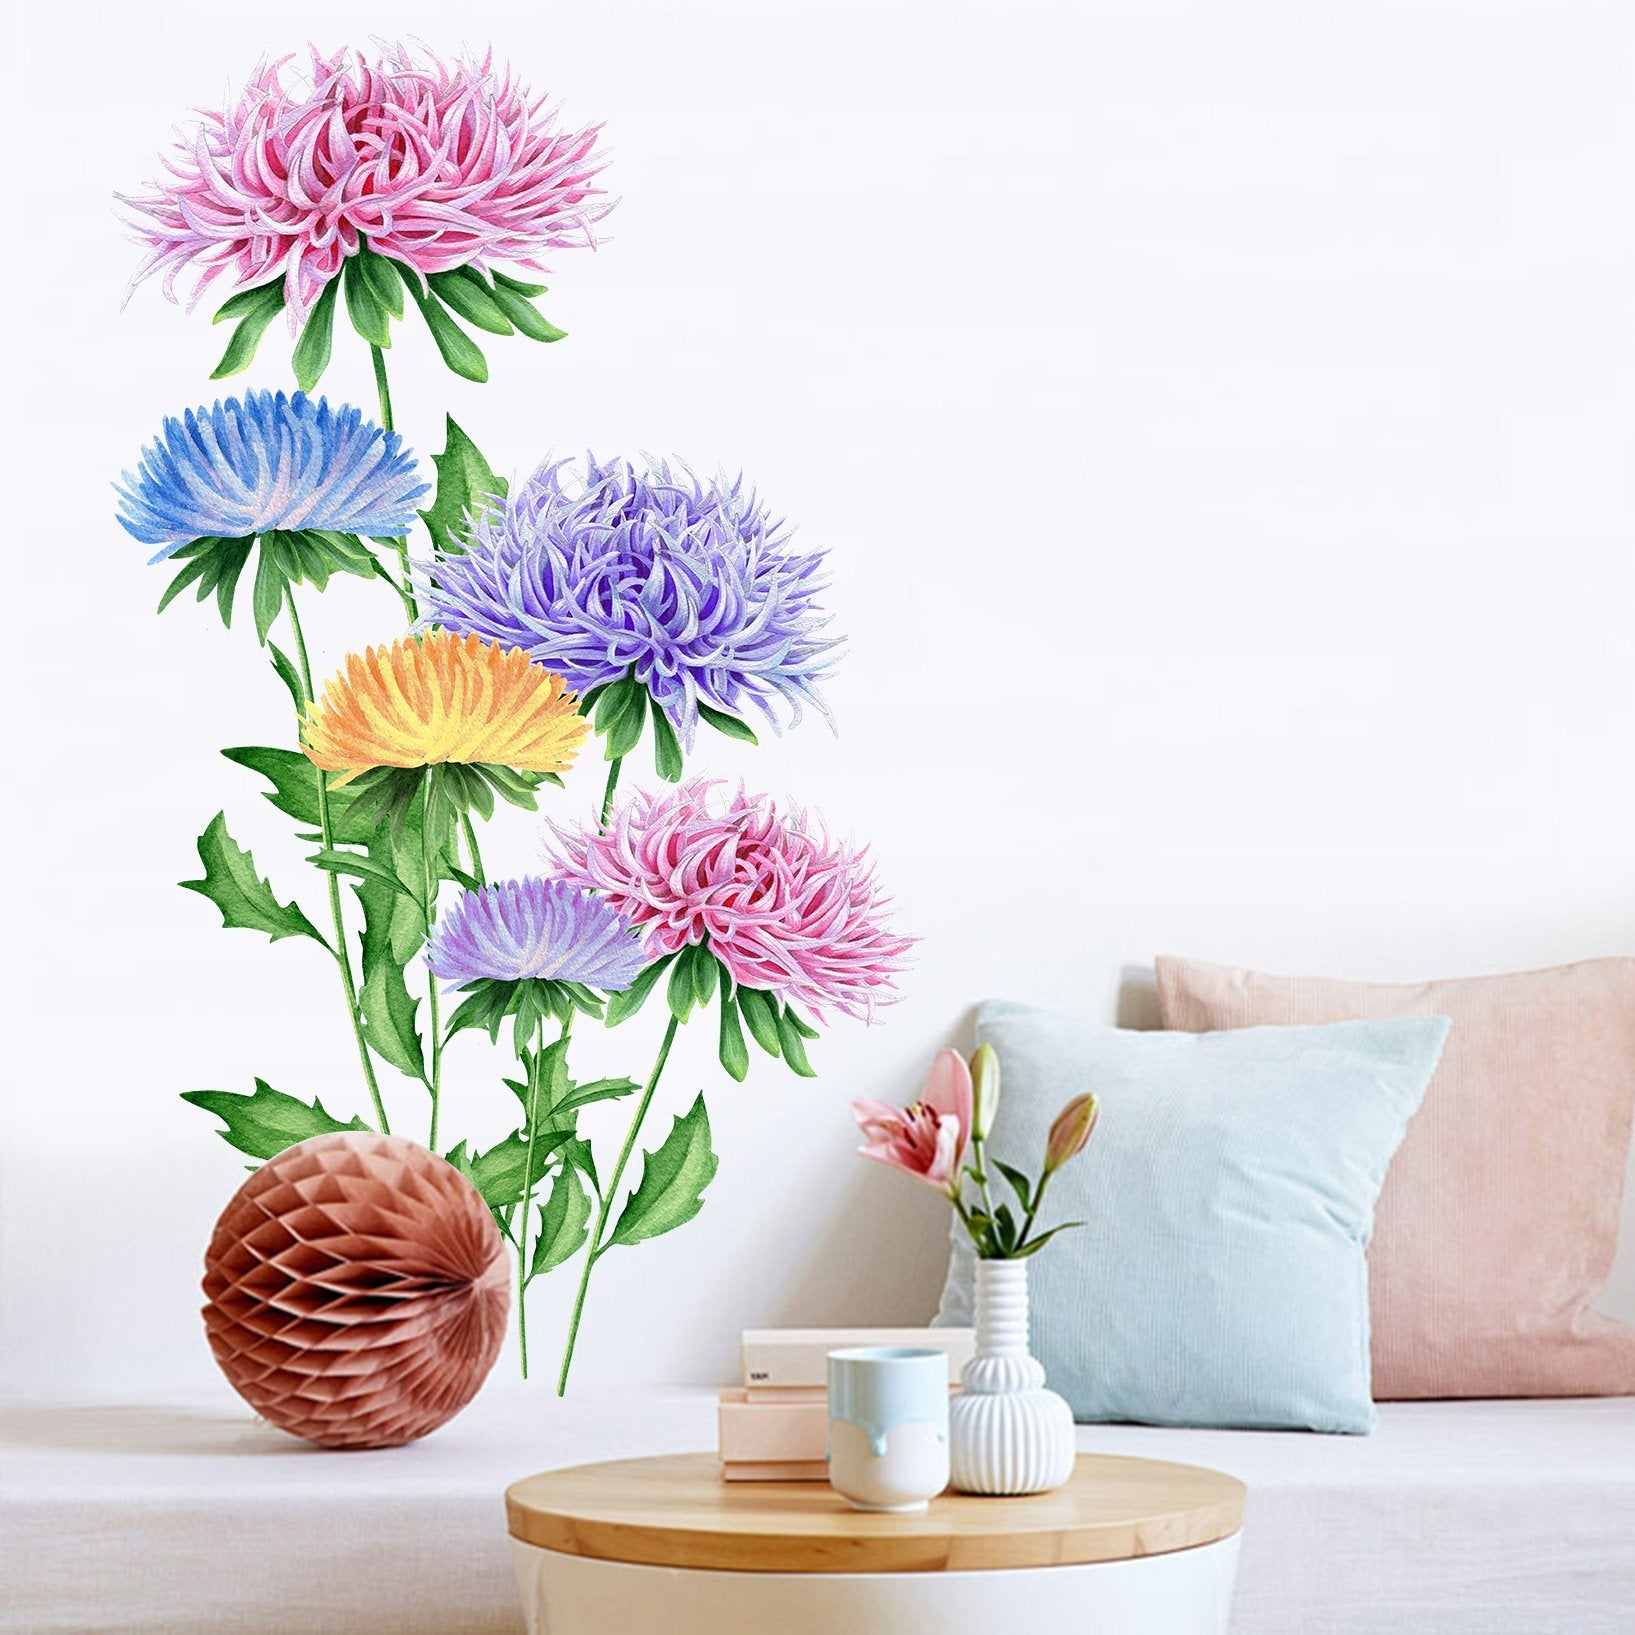 3D Beautiful Flower Blossom 046 Wall Stickers Wallpaper AJ Wallpaper